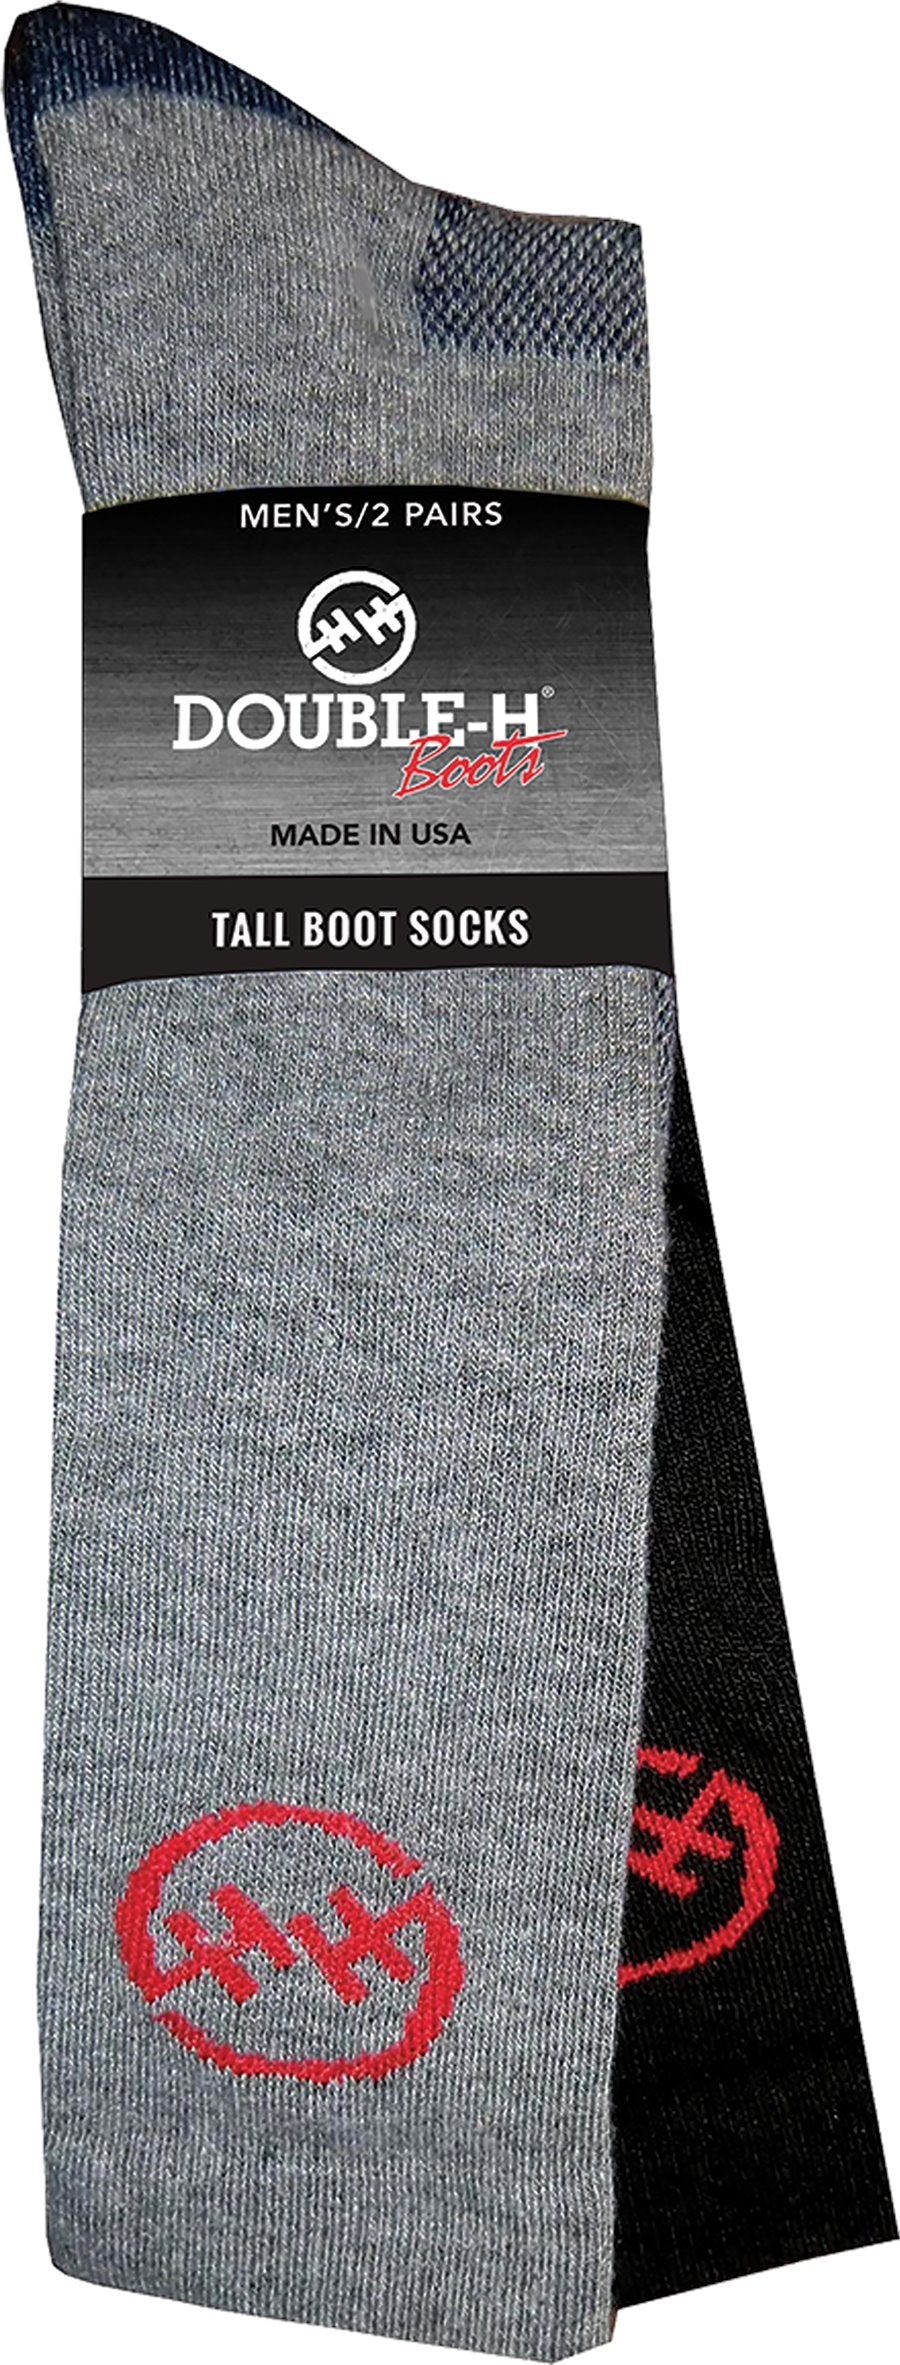 Double H Men's Tall Boot Socks - 2 Pack